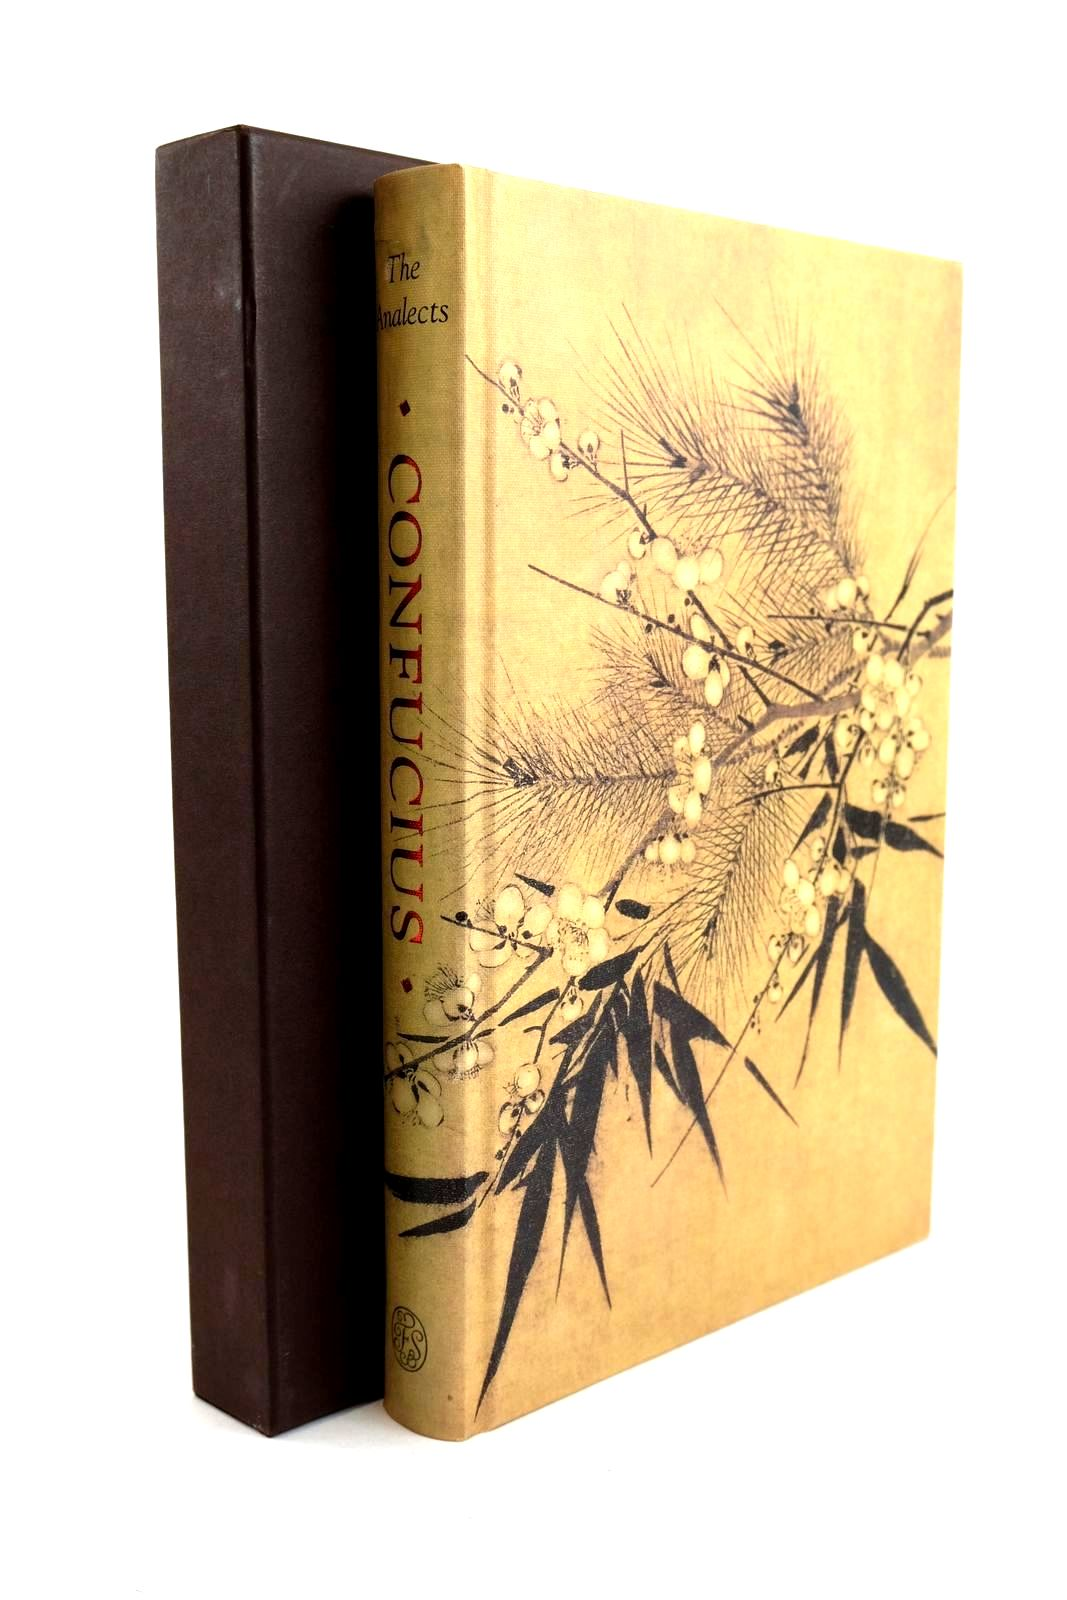 Photo of CONFUCIUS THE ANALECTS written by Yu, Lun Lau, D.C. Grayling, A.C. published by Folio Society (STOCK CODE: 1320506)  for sale by Stella & Rose's Books